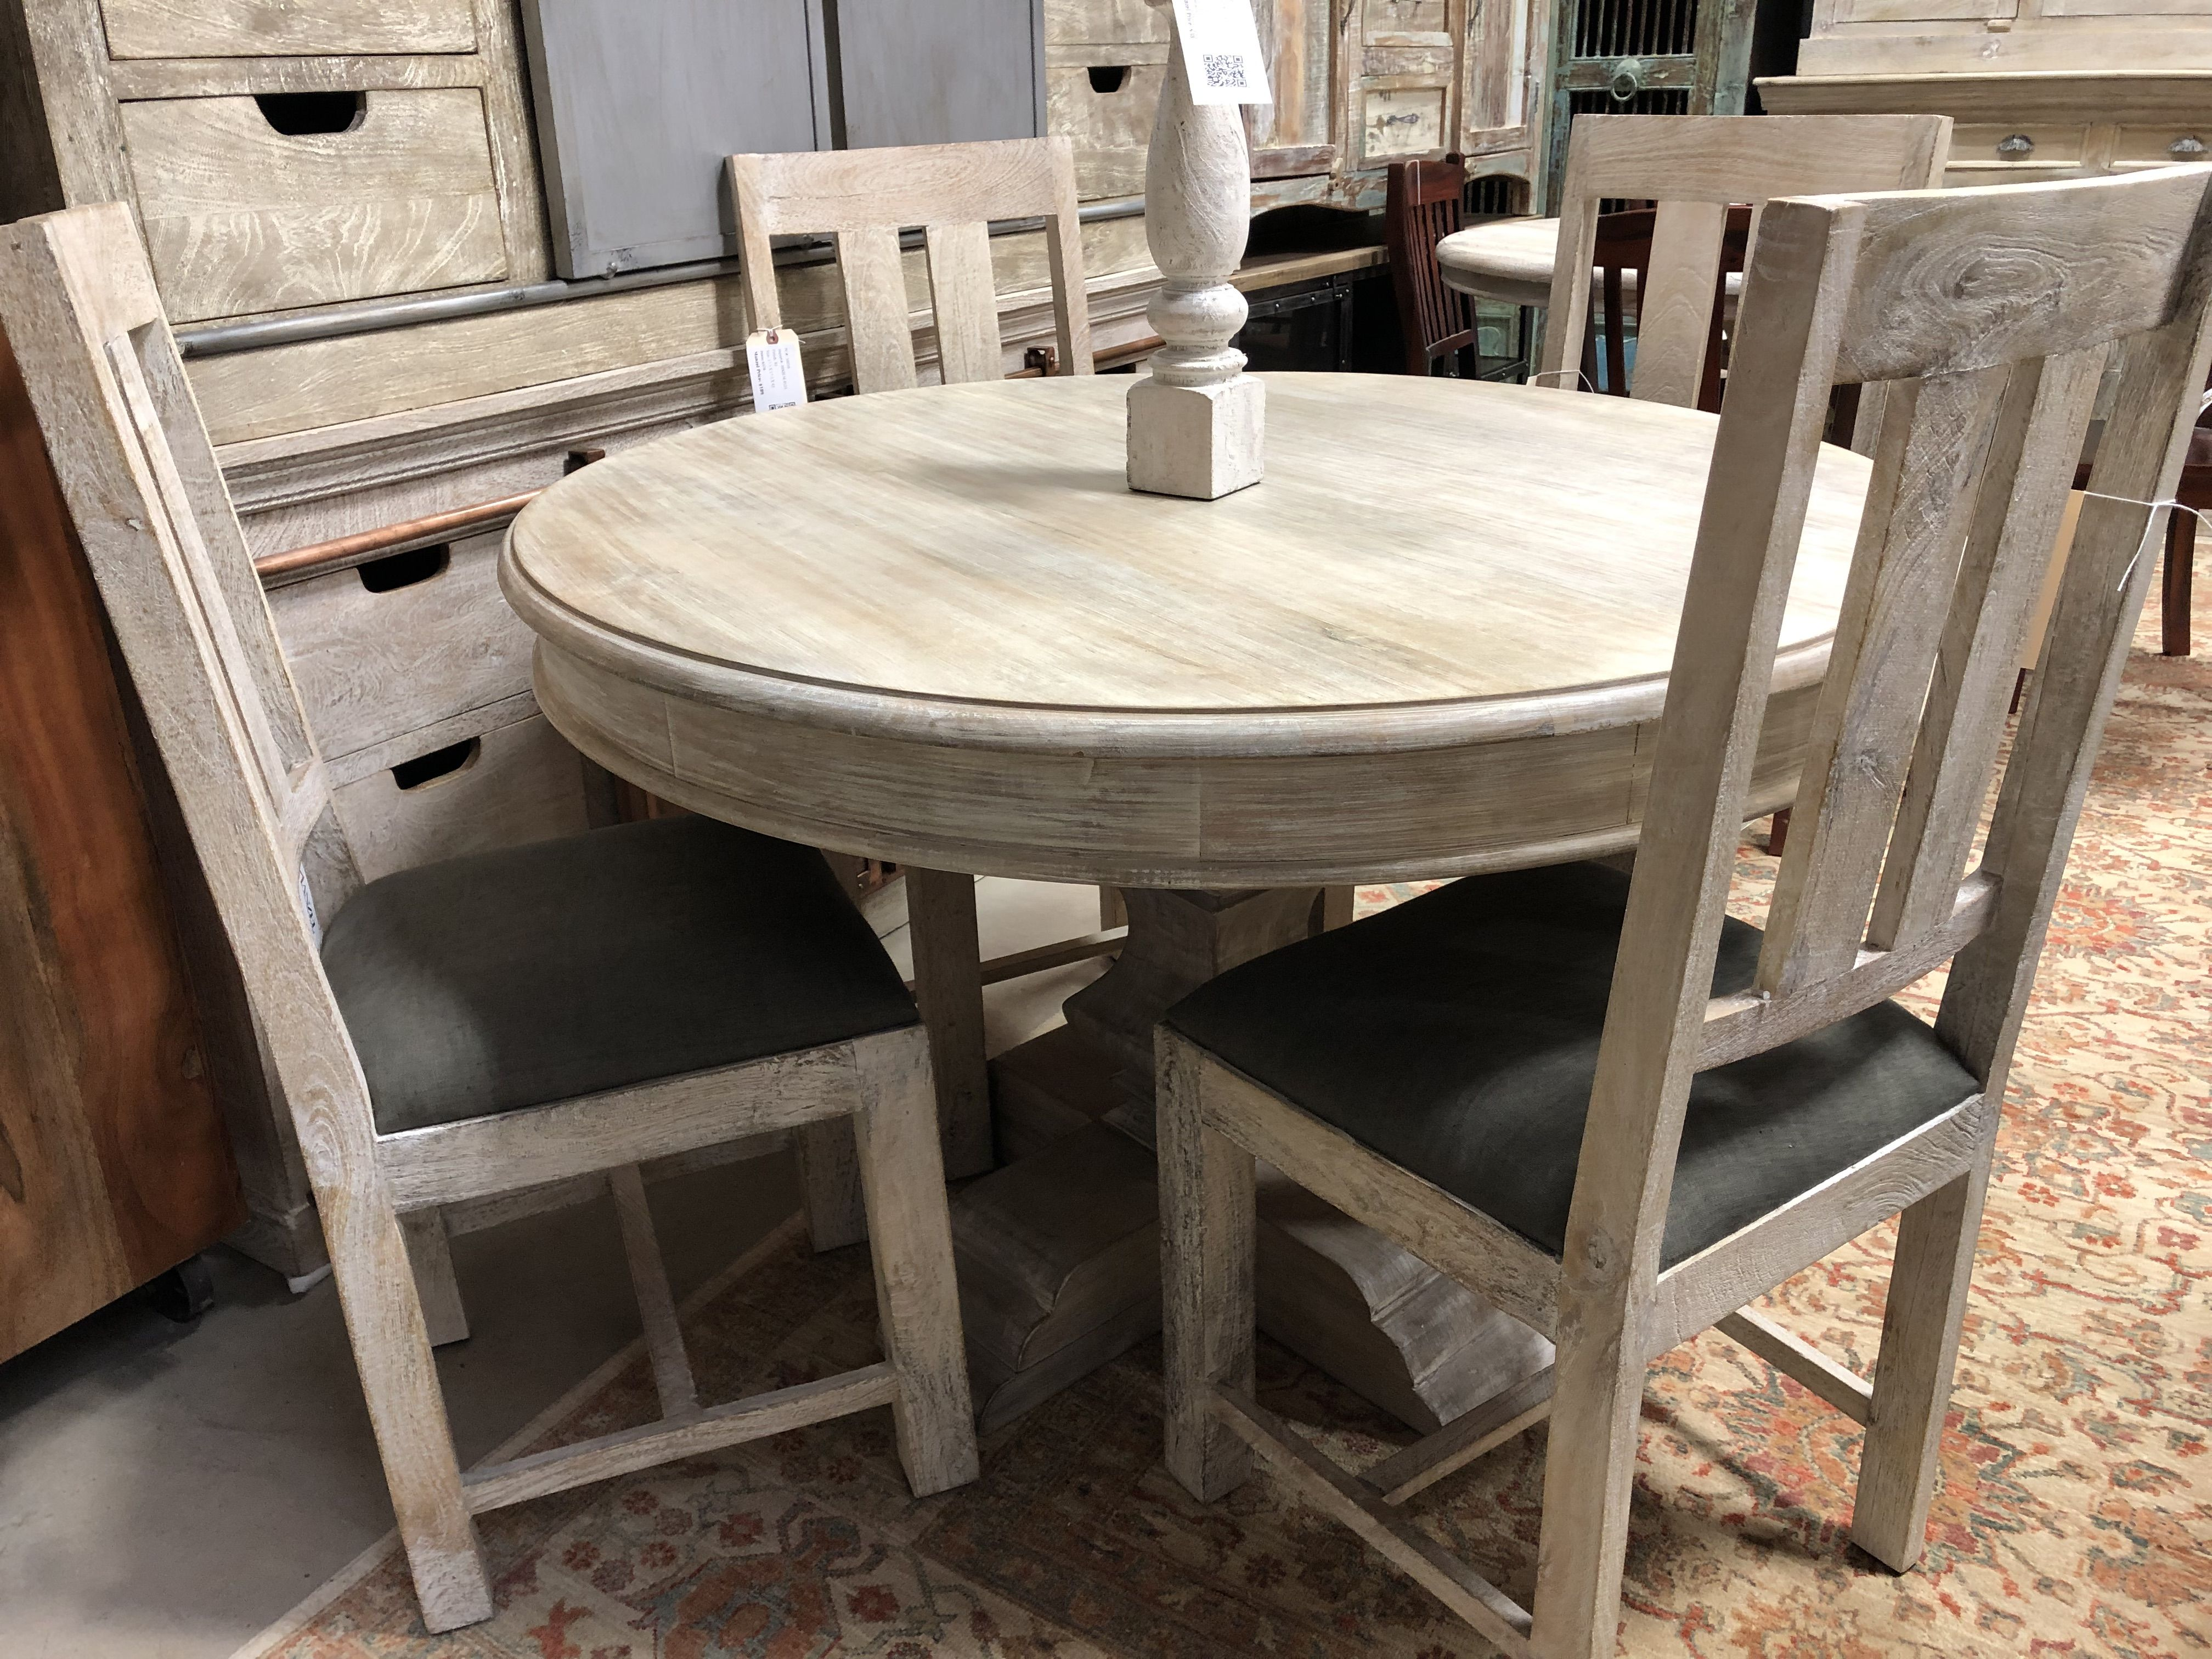 A Round 48 Table Seats 4 Comfortably Solid White Washed Wood